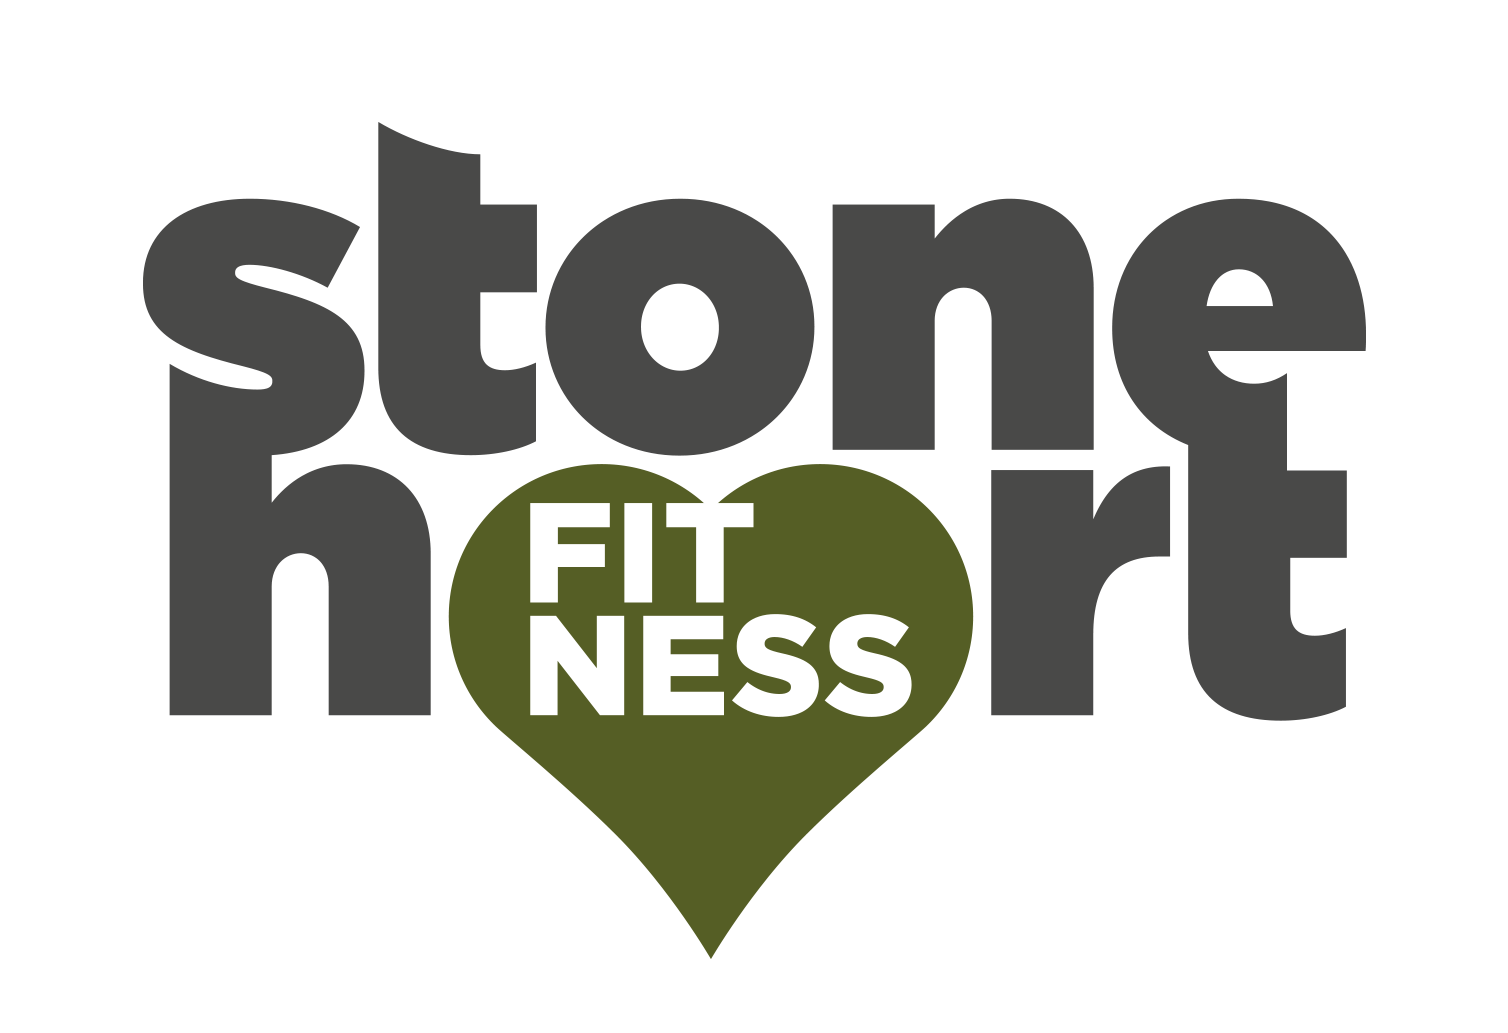 Stoneheart.fitnesspng